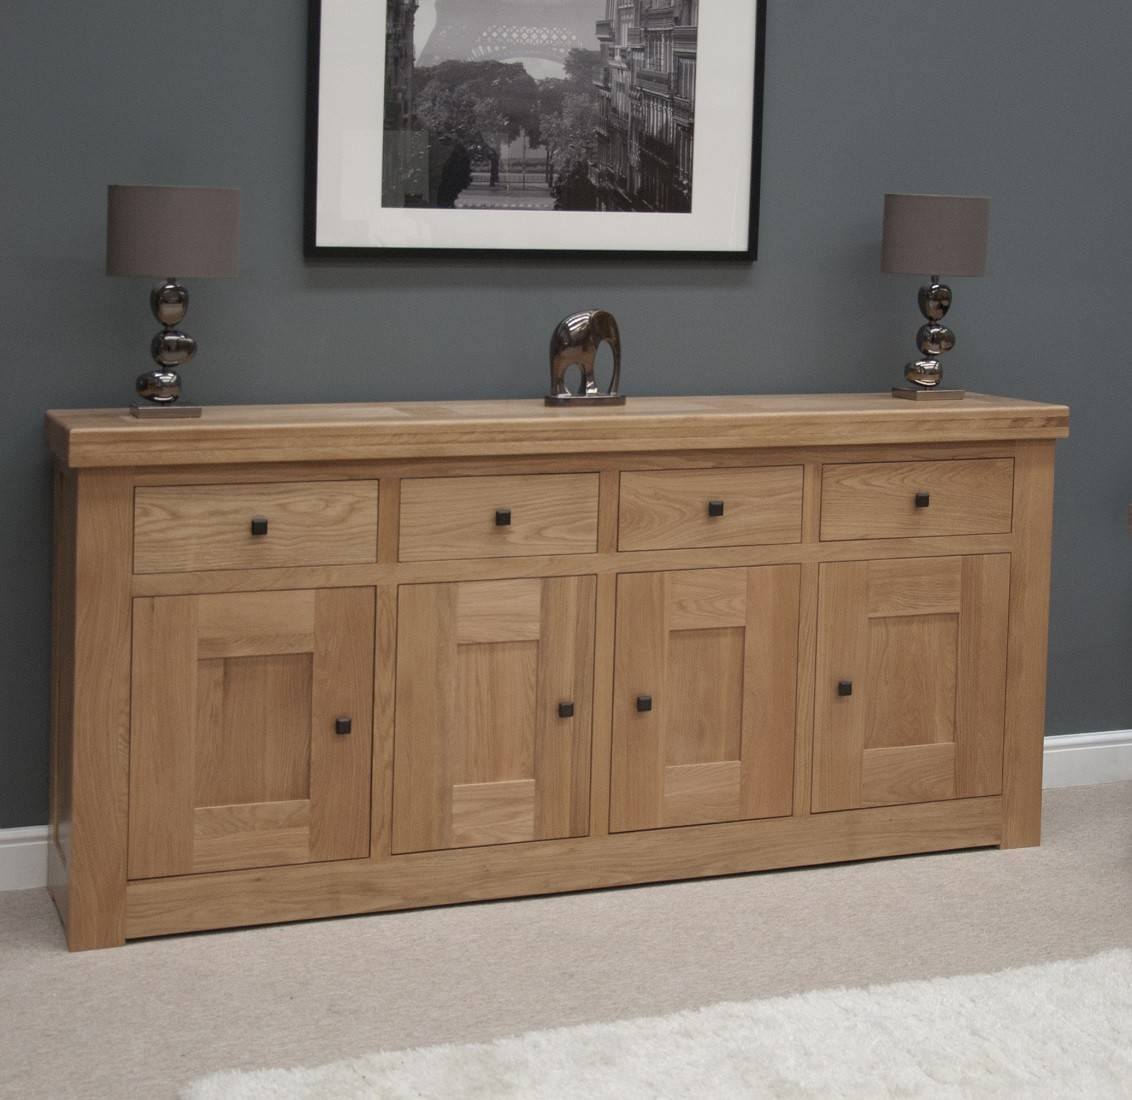 French Bordeaux Oak Extra Large 4 Door Sideboard | Oak Furniture Uk For Most Recently Released Extra Large Oak Sideboards (View 3 of 15)